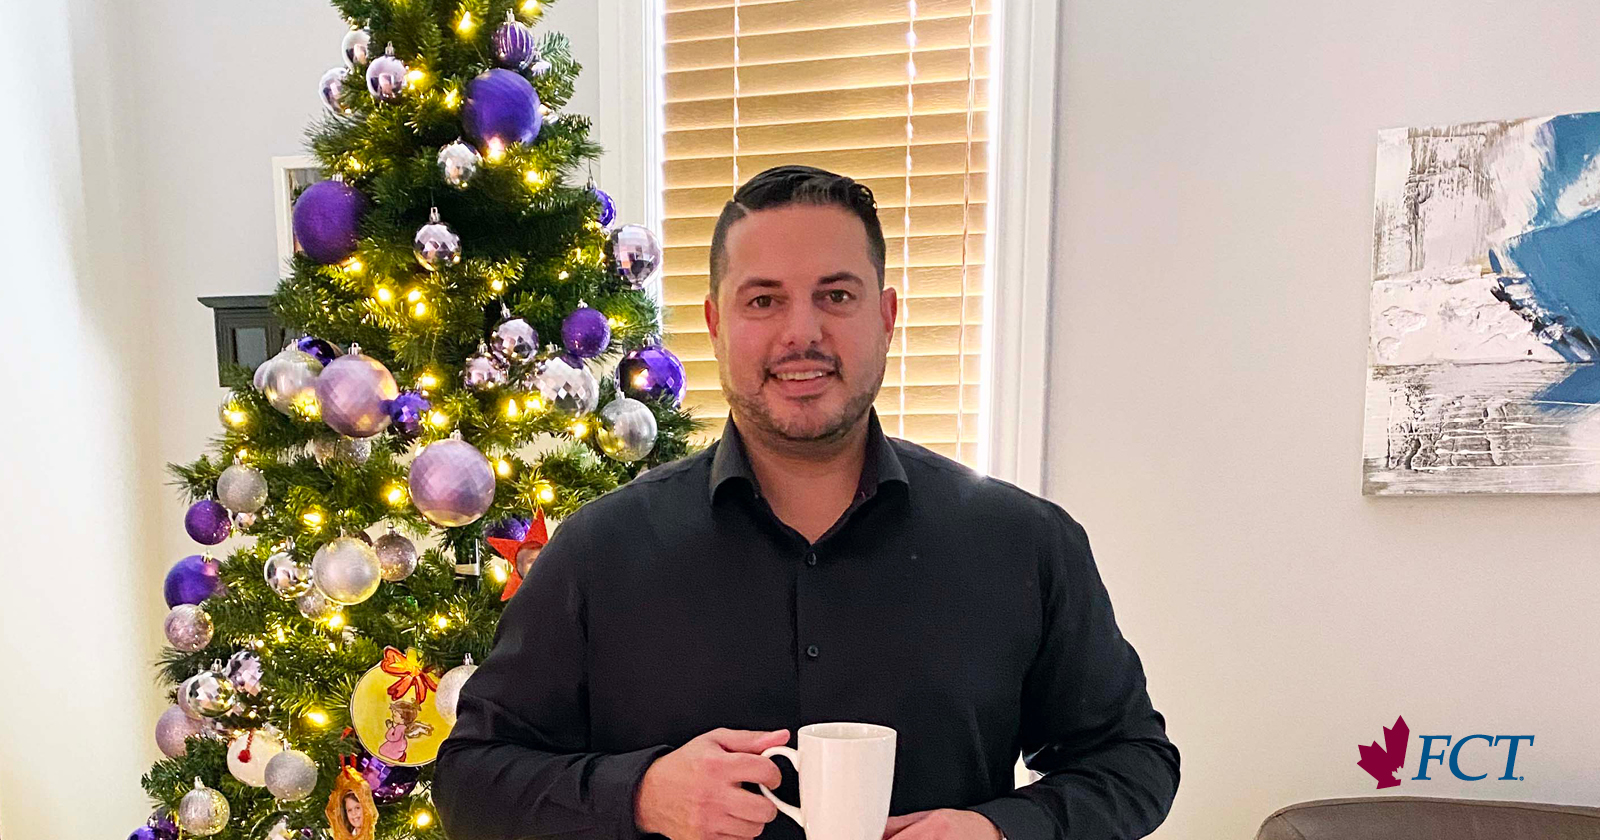 man holding a cup with a Christmas tree behind him